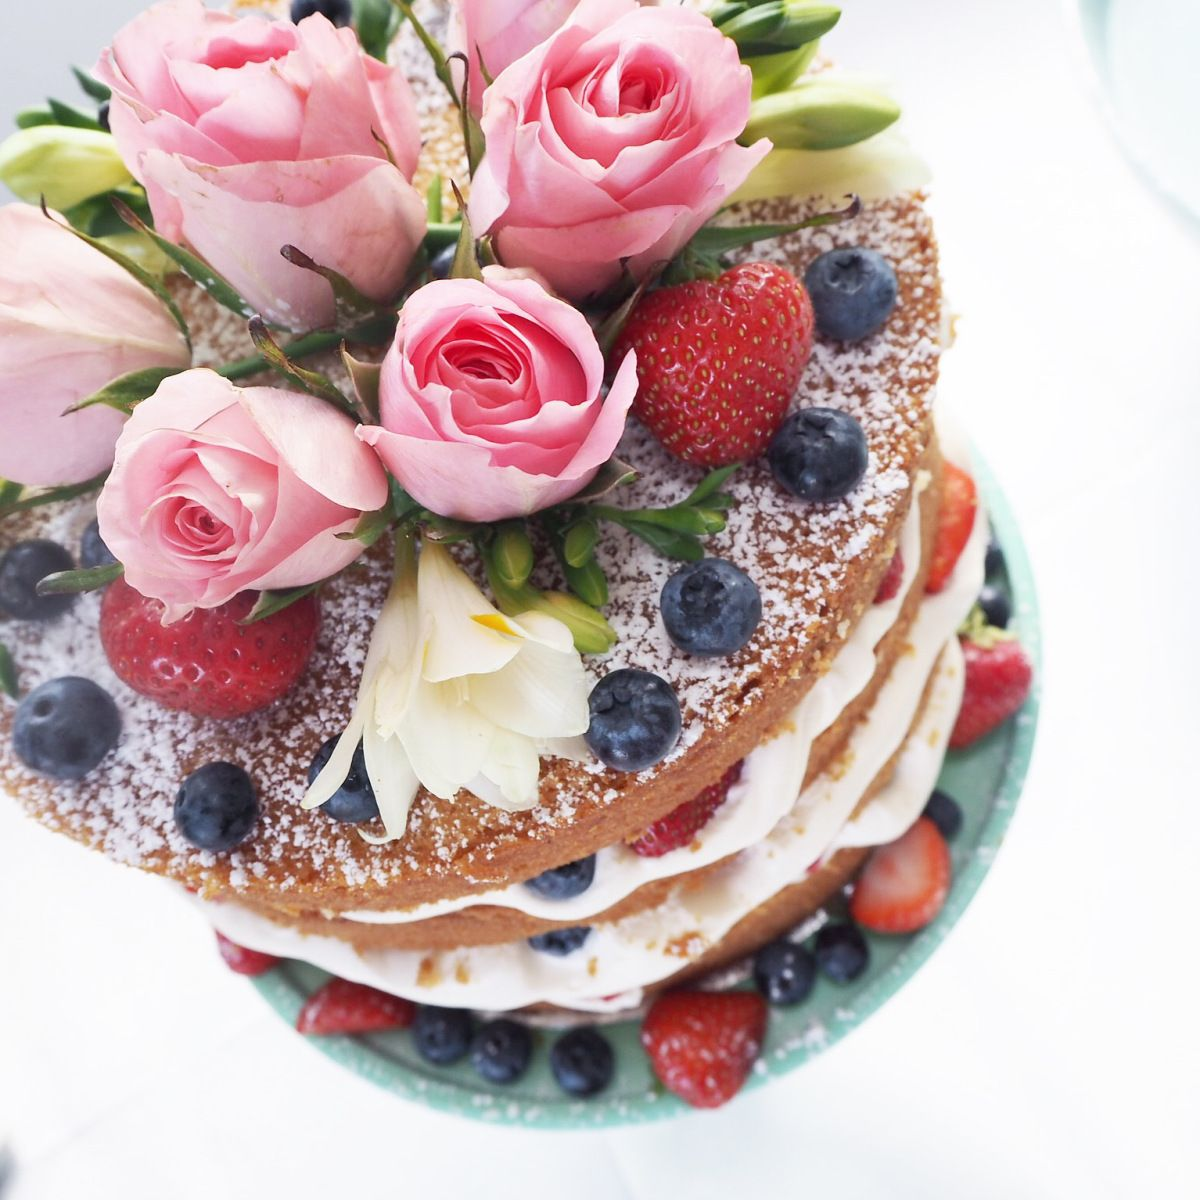 RUSTIC NAKED VICTORIA SPONGE LAYER CAKES